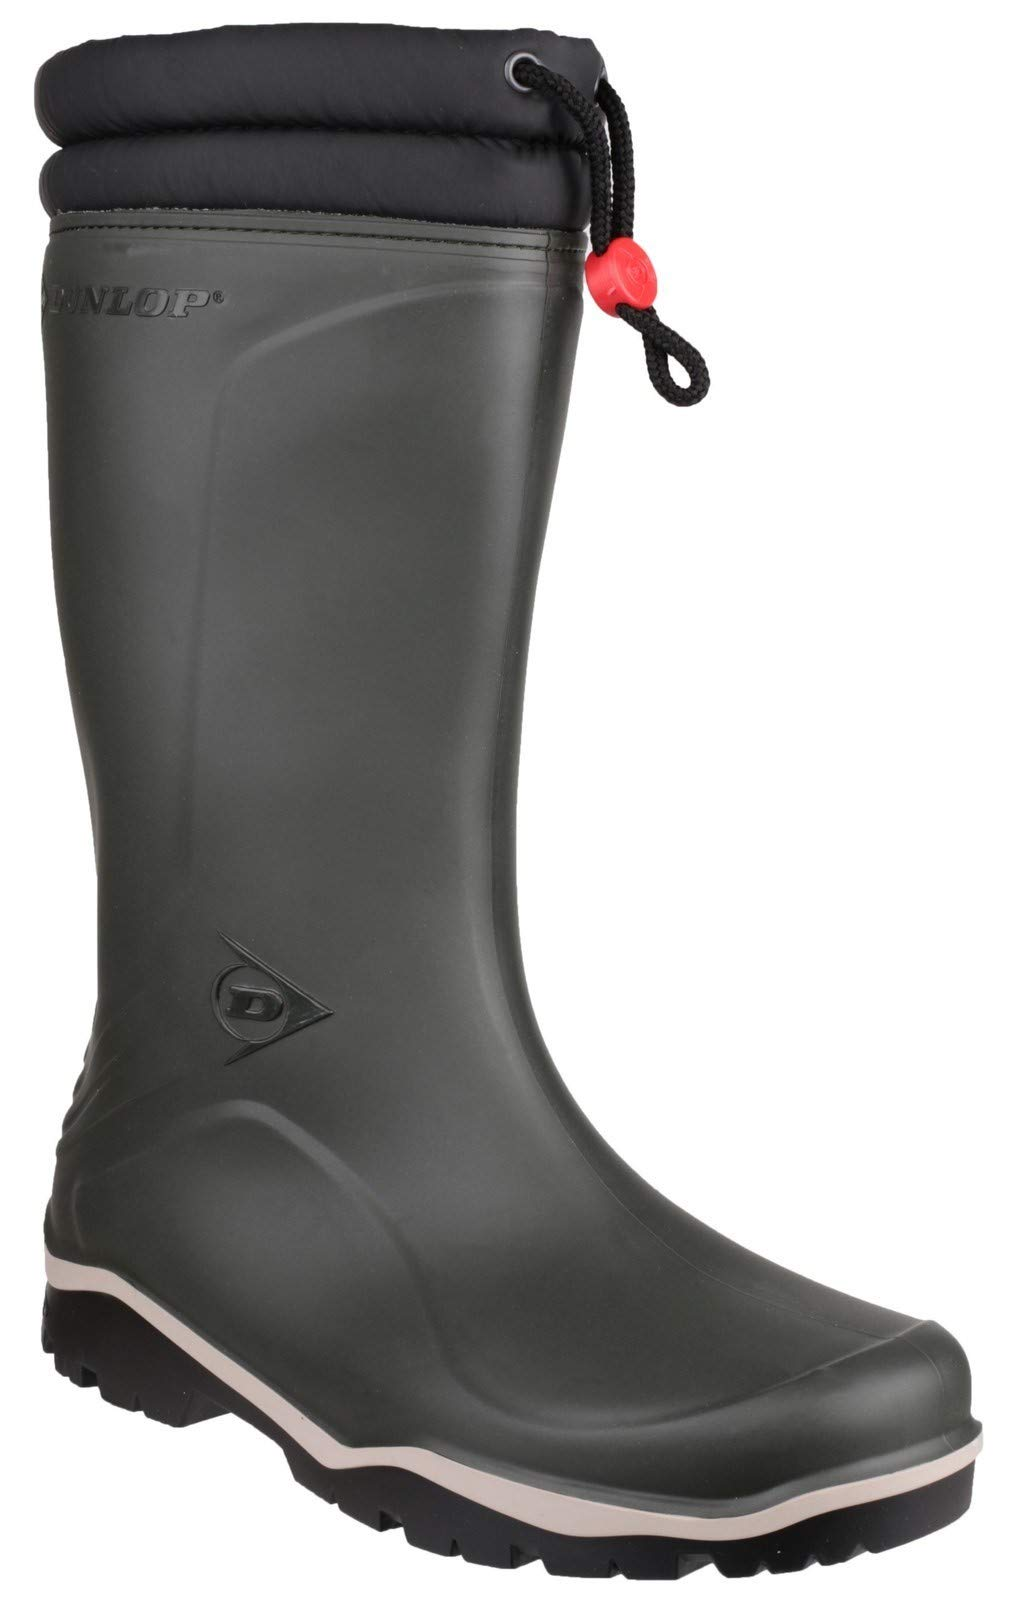 Dunlop Men's Blizzard Wellington Boot | Green | UK 10.5 | EU 45 by Dunlop